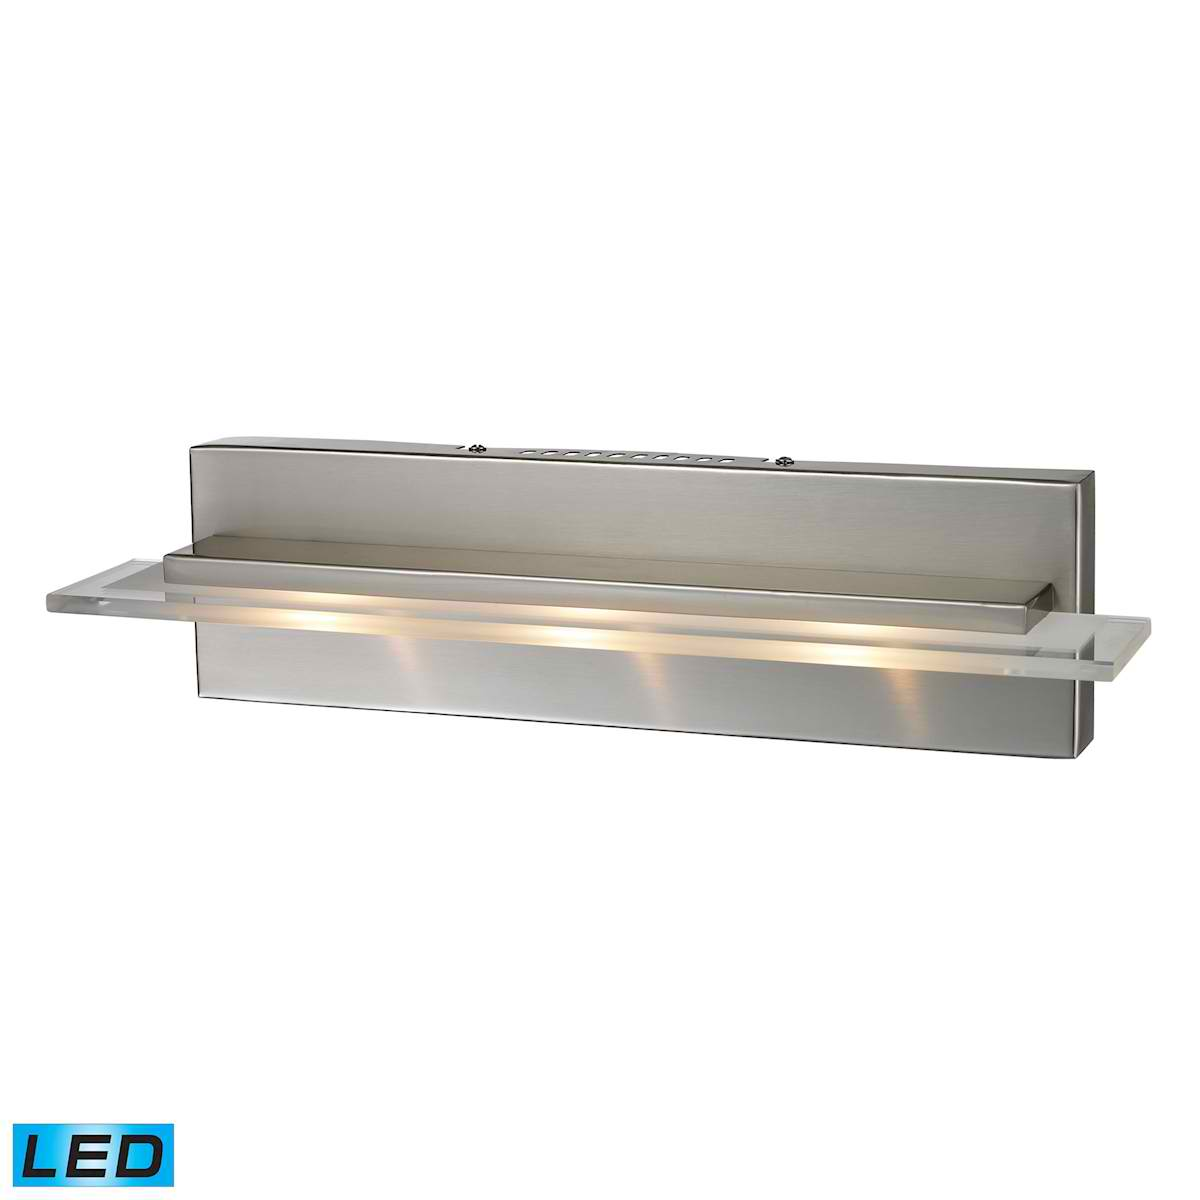 LED 3Light 5W Vanity